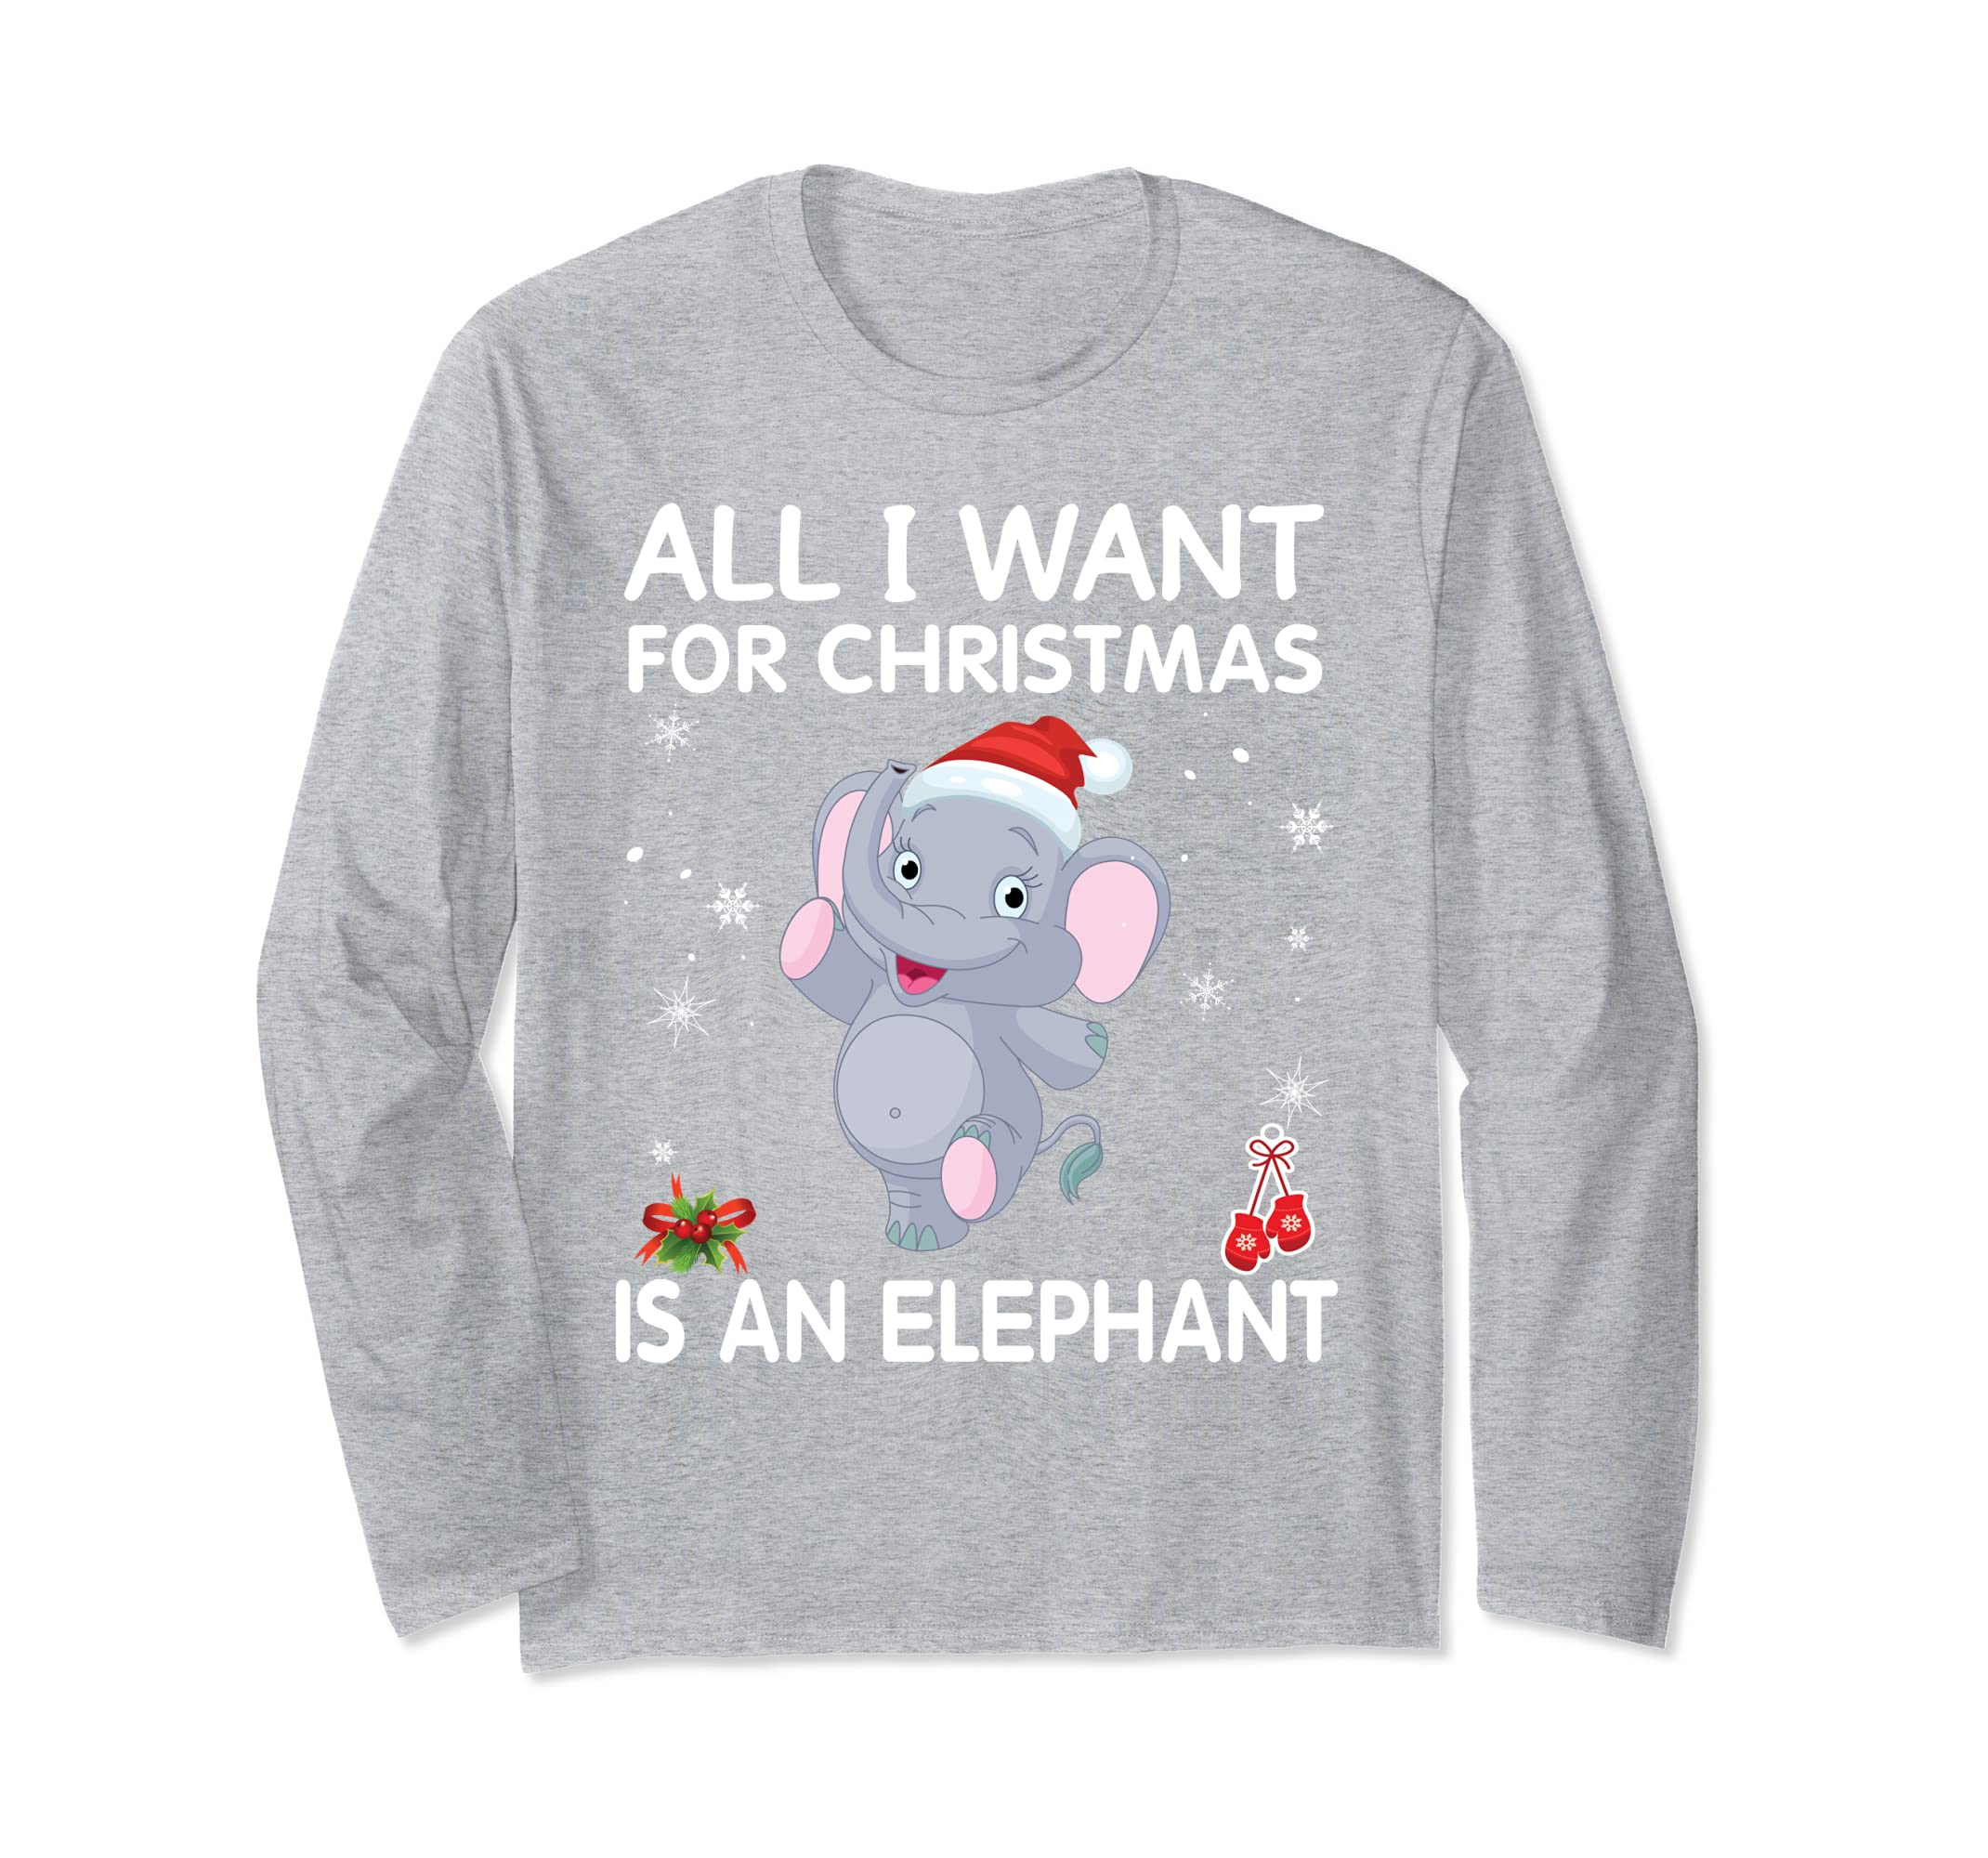 Amazon.com: All I Want for Christmas Is An Elephant T-Shirt Merry ...